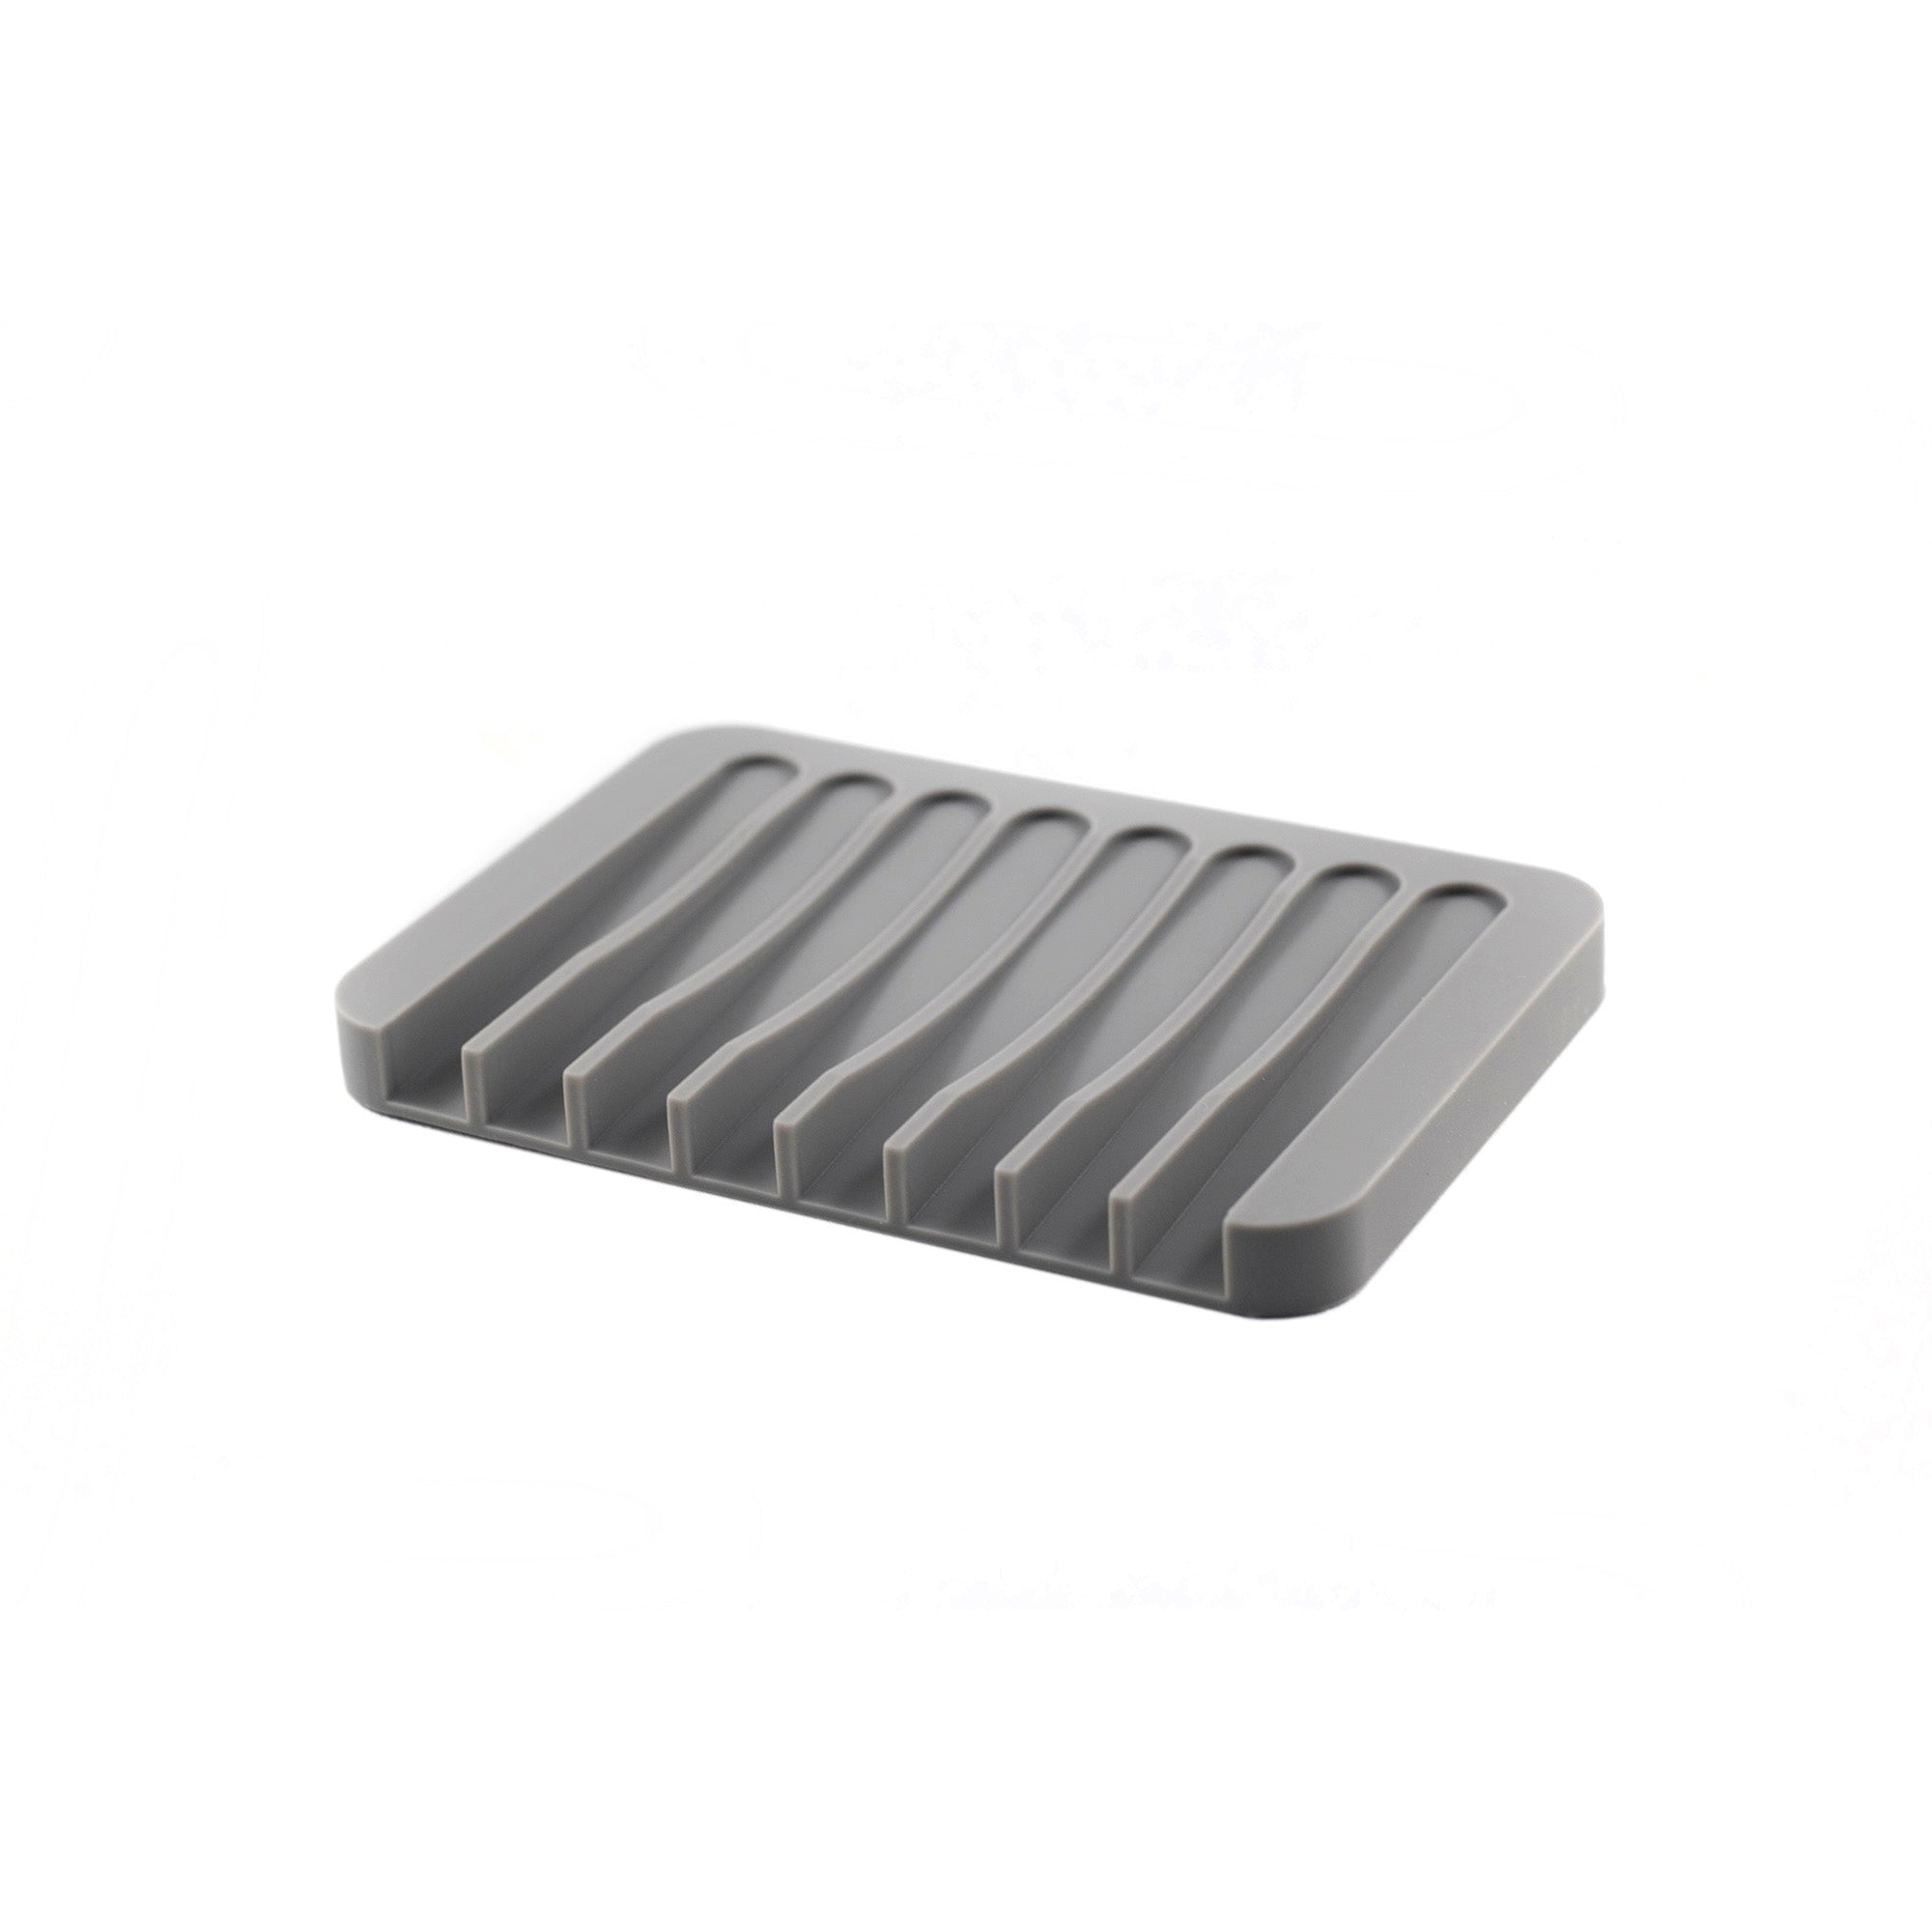 A light grey raised and grooved silicone soap dish